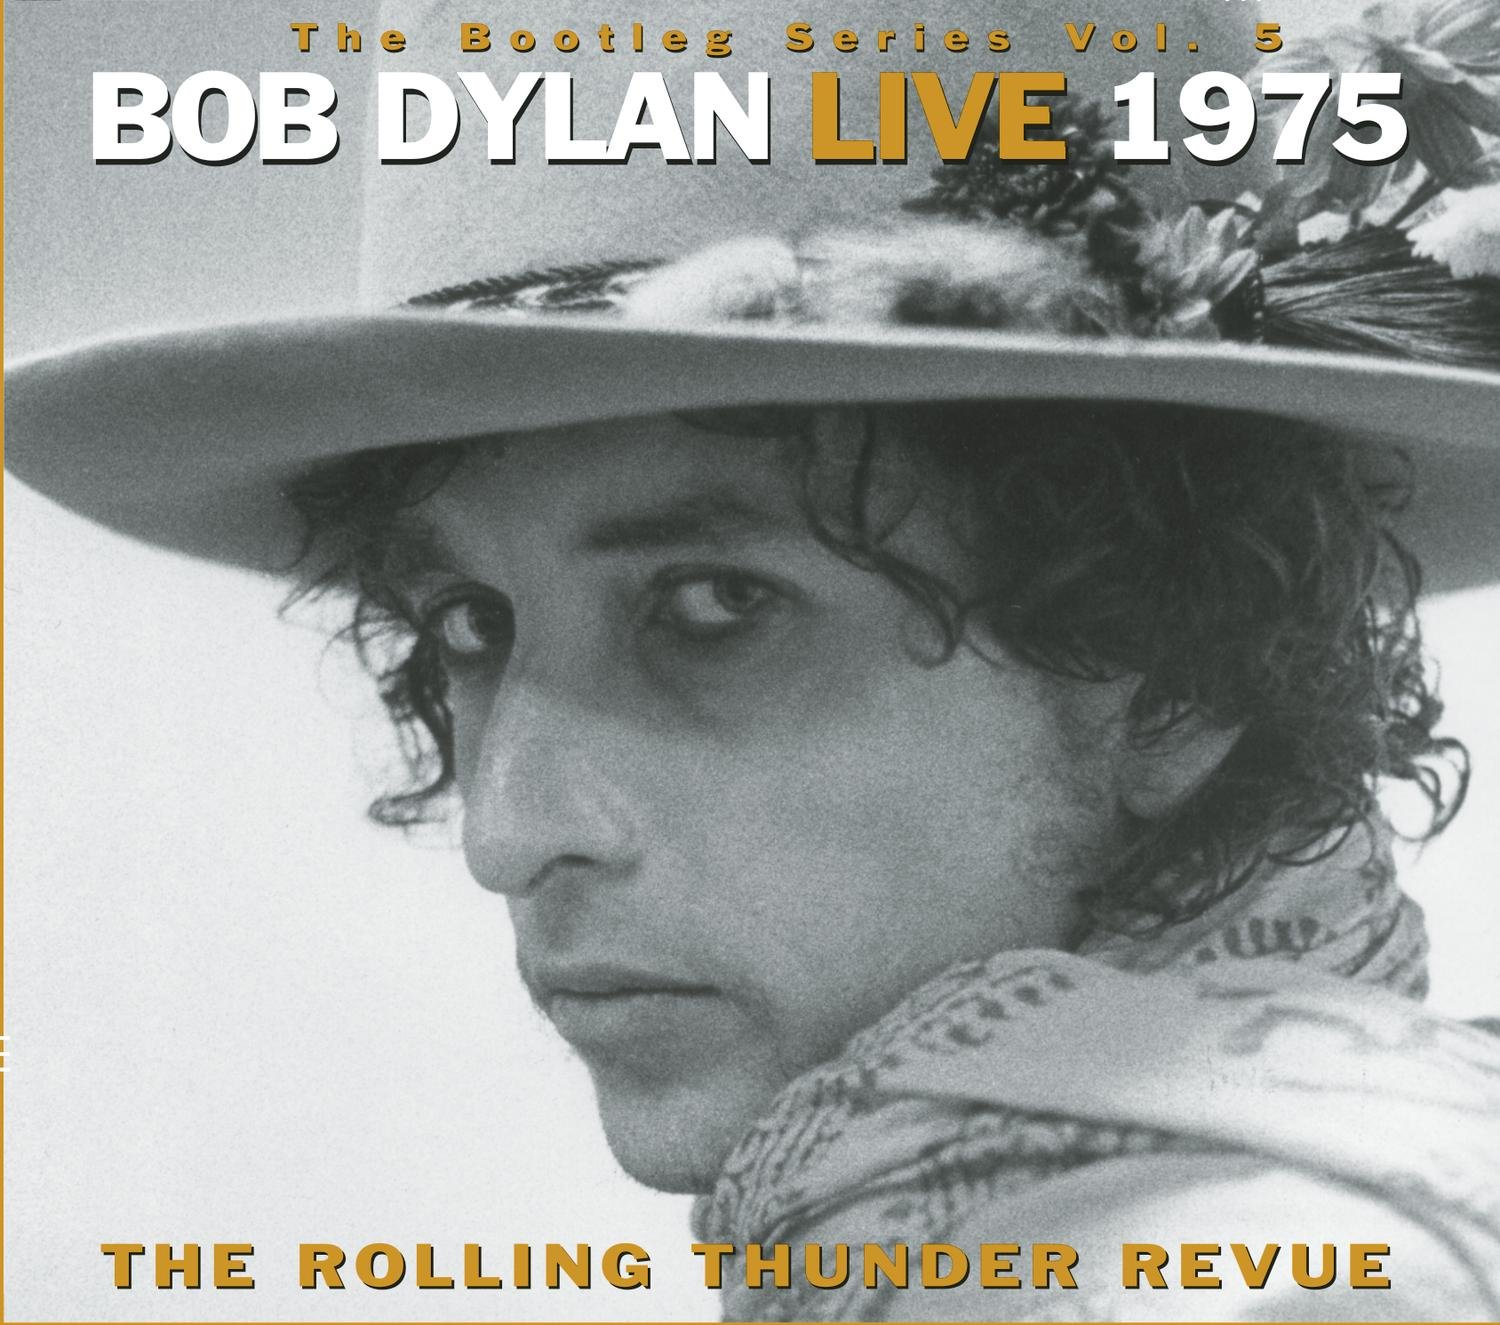 Bob Dylan Live 1975 (The Bootleg Series Volume 5) by Columbia/Legacy